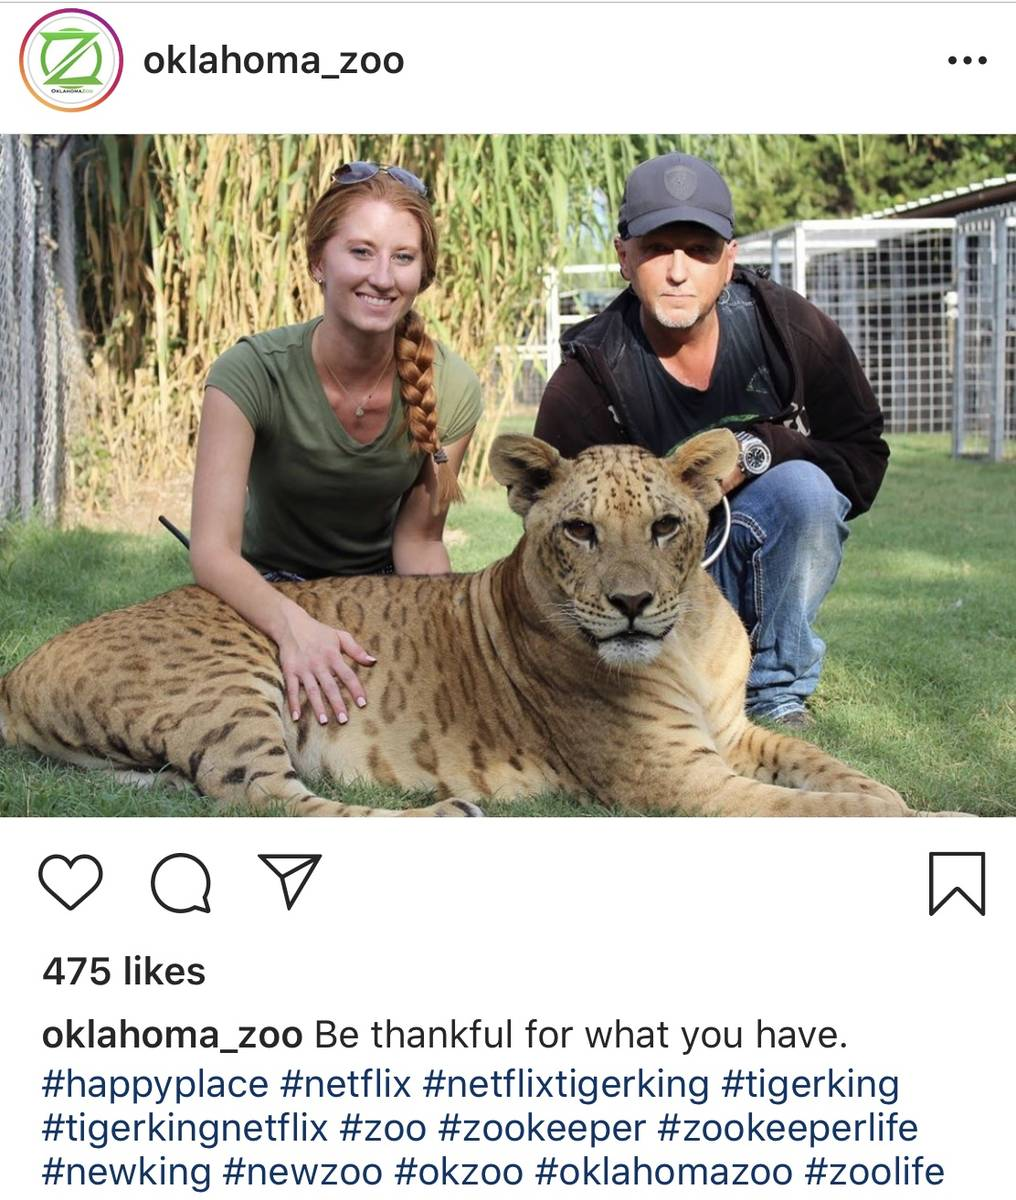 Jeff and Lauren Lowe are shown on the Oklahoma Zoo Instagram page. (@Oklahoma_Zoo)